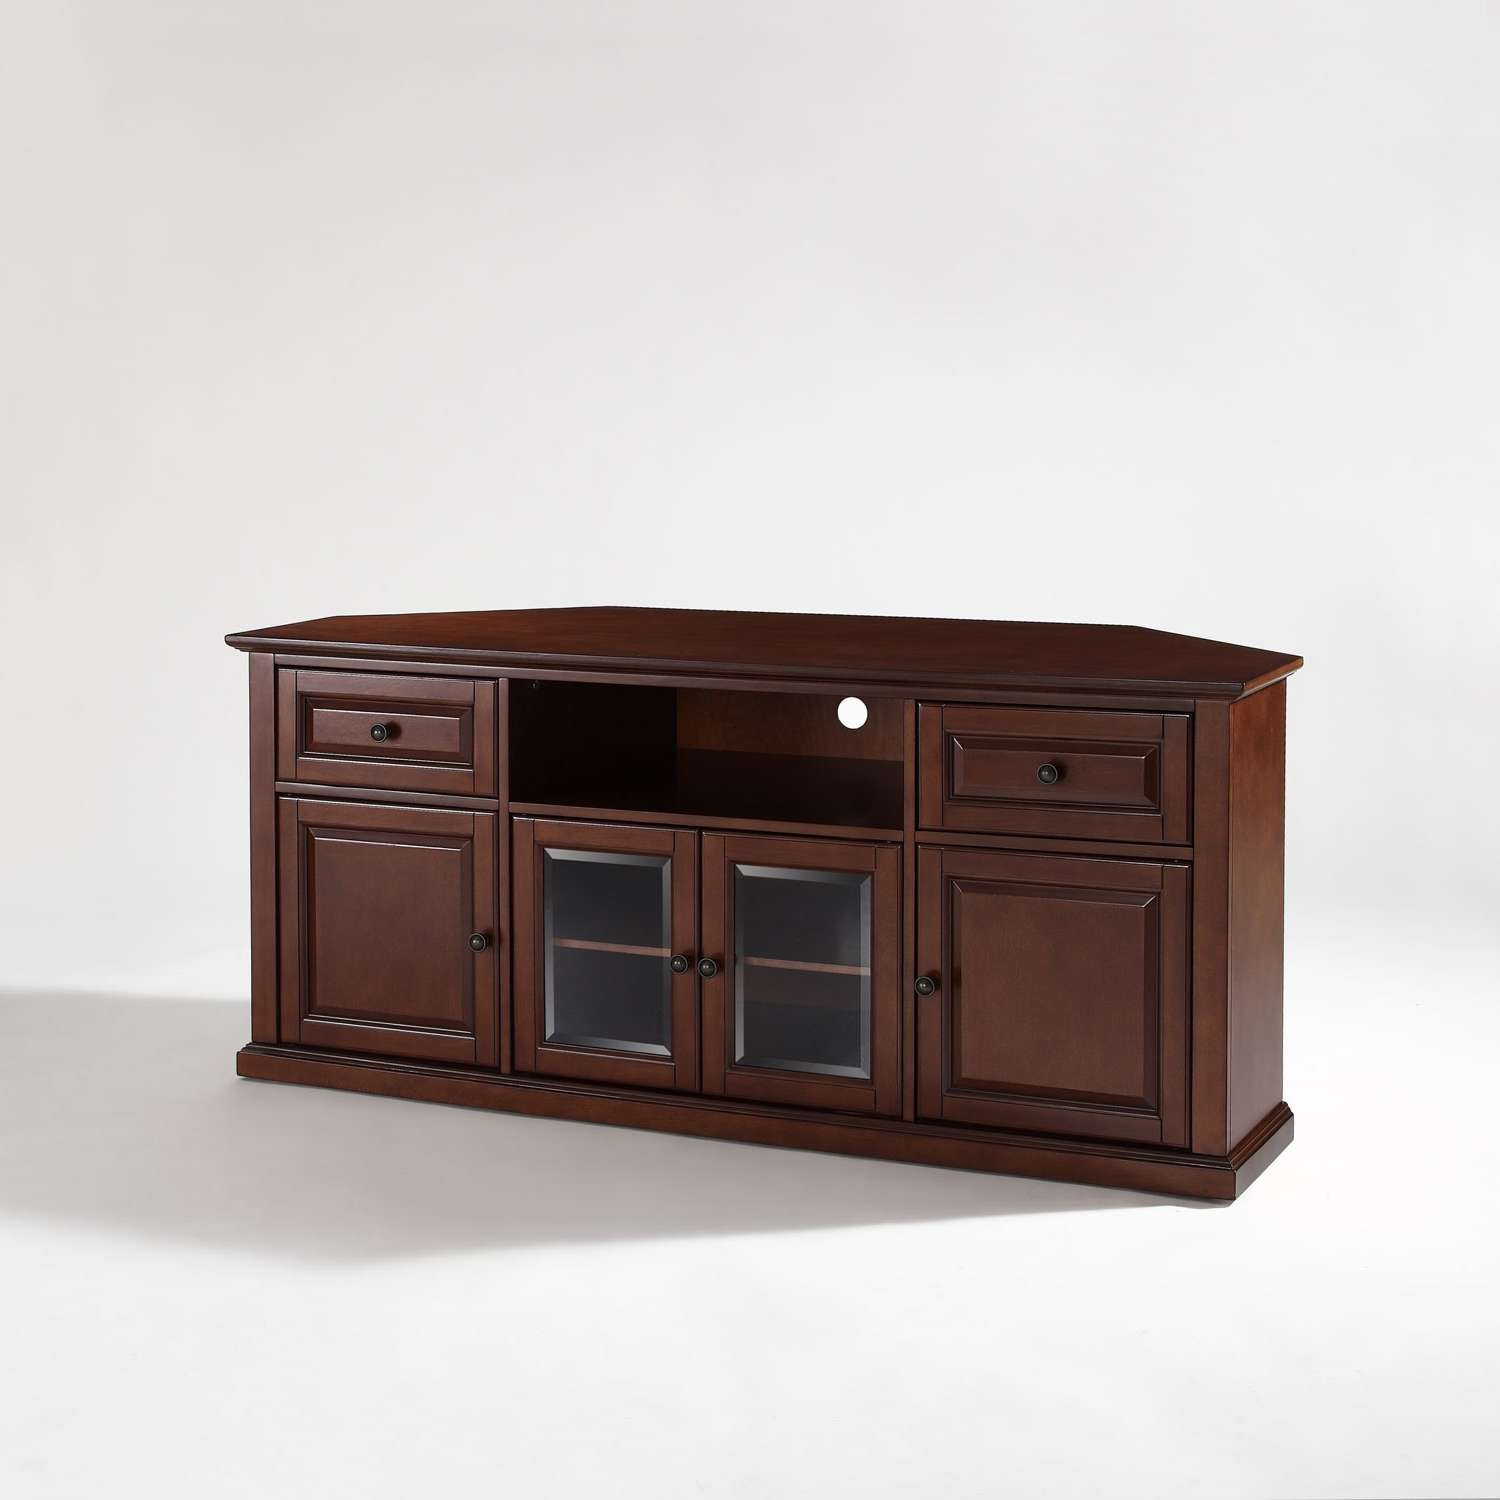 60 Inch Corner Tv Stand In Vintage Mahogany Crosley Furniture For Tv Stands For Corners (View 7 of 20)